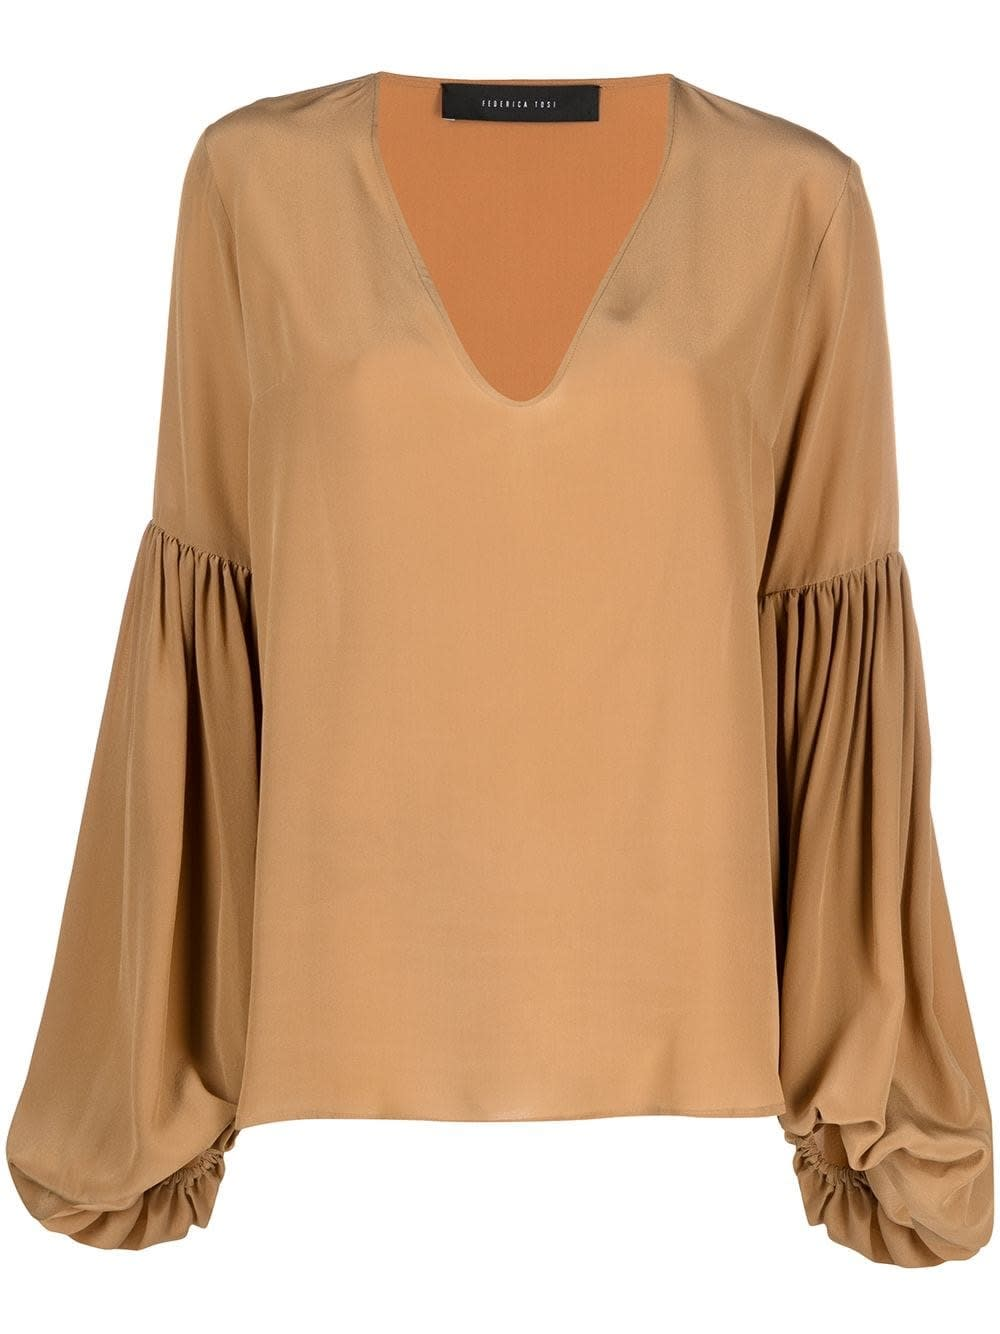 Federica Tosi CAMEL COLOR SILK BLOUSE WITH PUFF SLEEVES